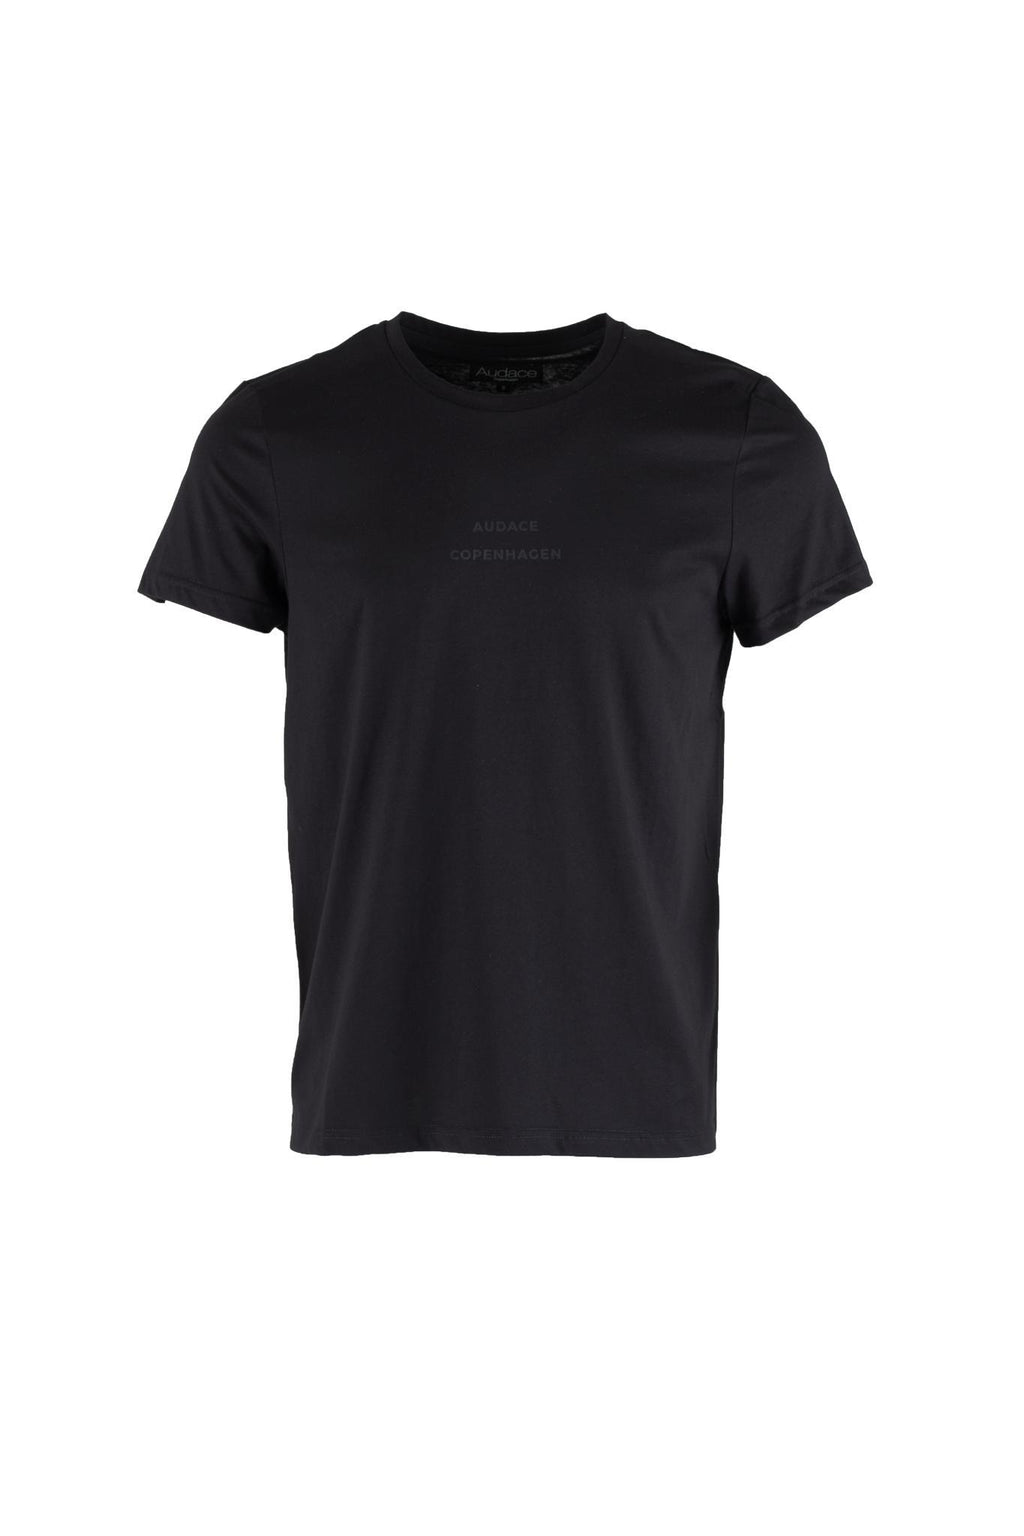 Legacy T-shirt - Black on black